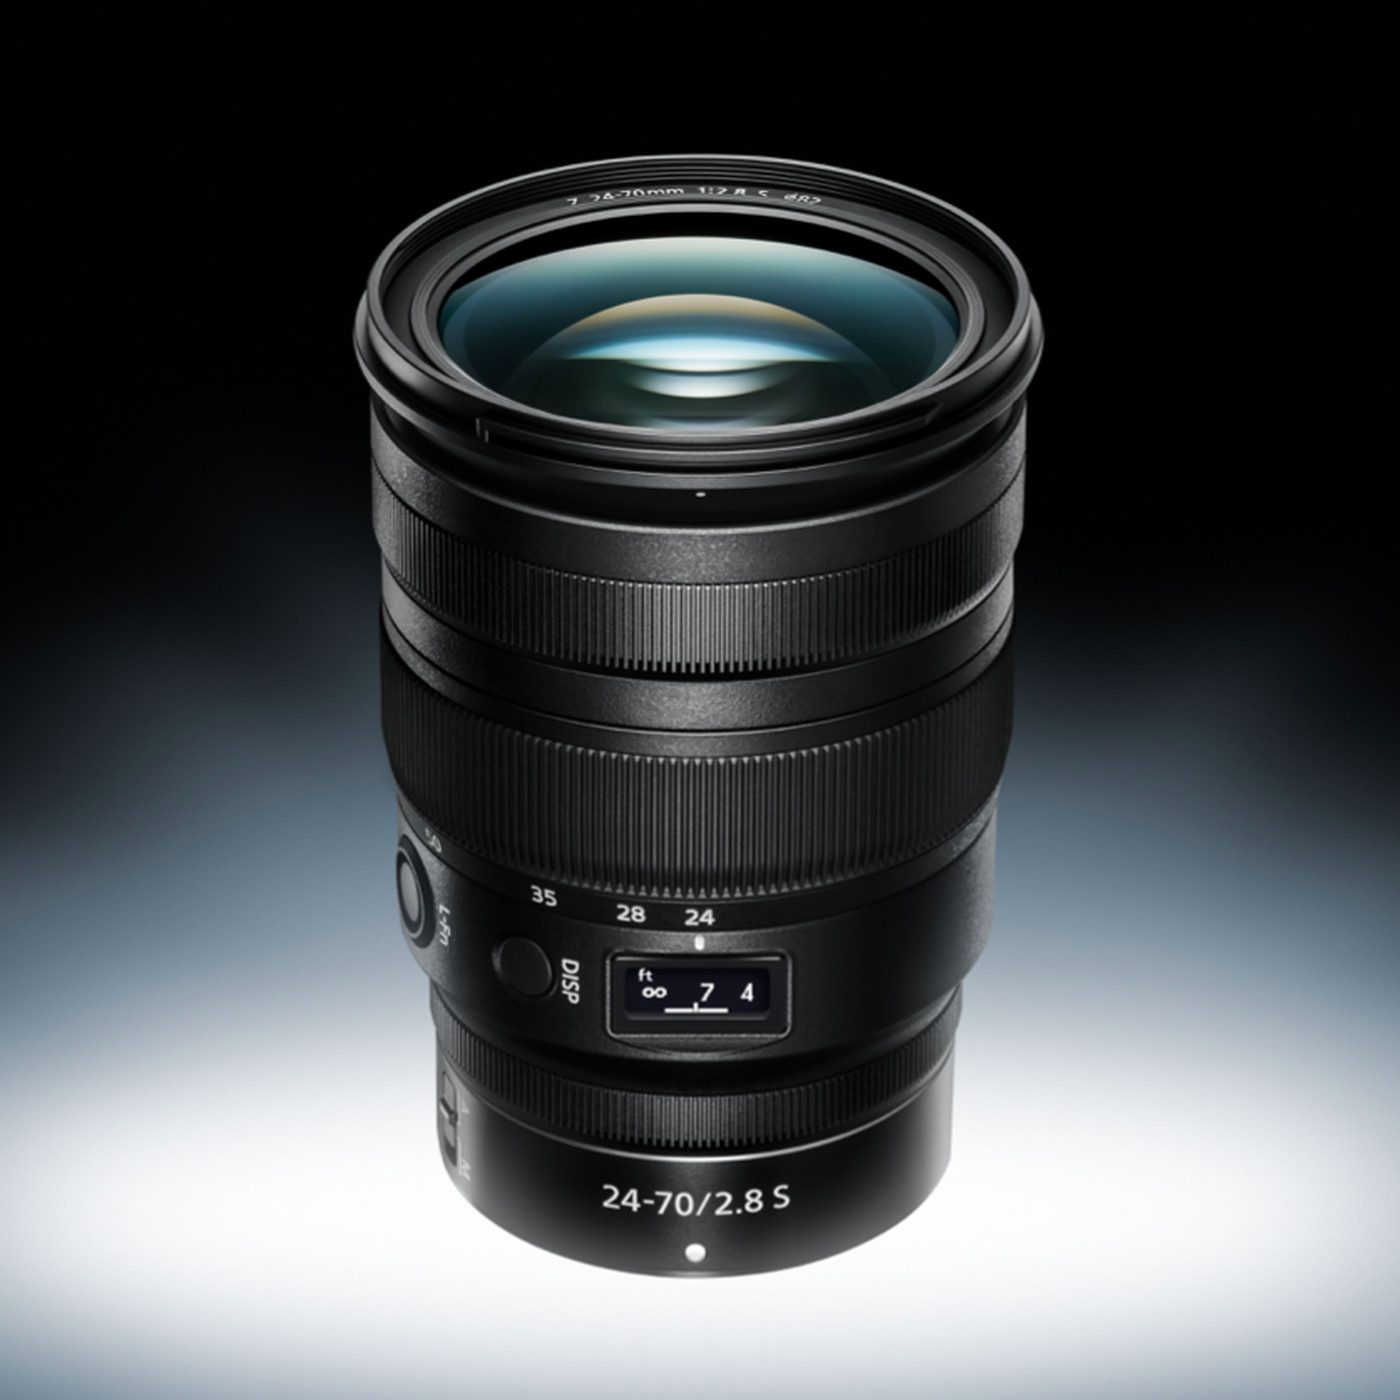 Nikon adds a fast, professional zoom lens to Z-mount lineup - The Verge